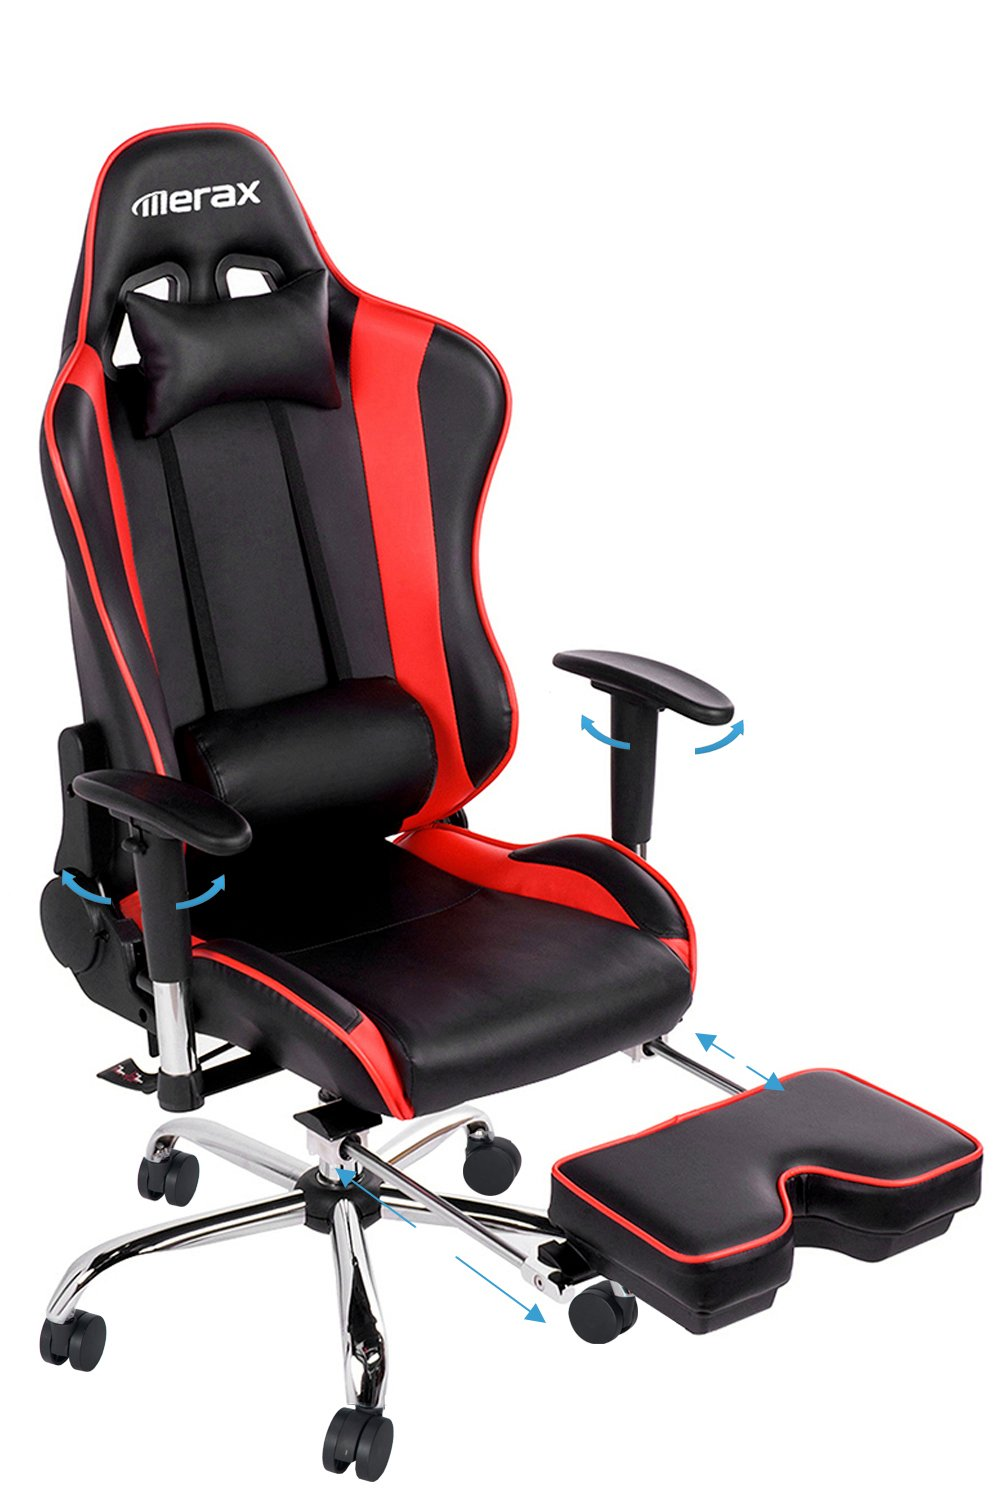 Amazon.com Merax Ergonomic Series Pu Leather Office Chair Racing Chair with Footrest Computer Gaming Chair Recliner Swivel Tilt Rocker and Seat Height ...  sc 1 st  Amazon.com & Amazon.com: Merax Ergonomic Series Pu Leather Office Chair Racing ... islam-shia.org